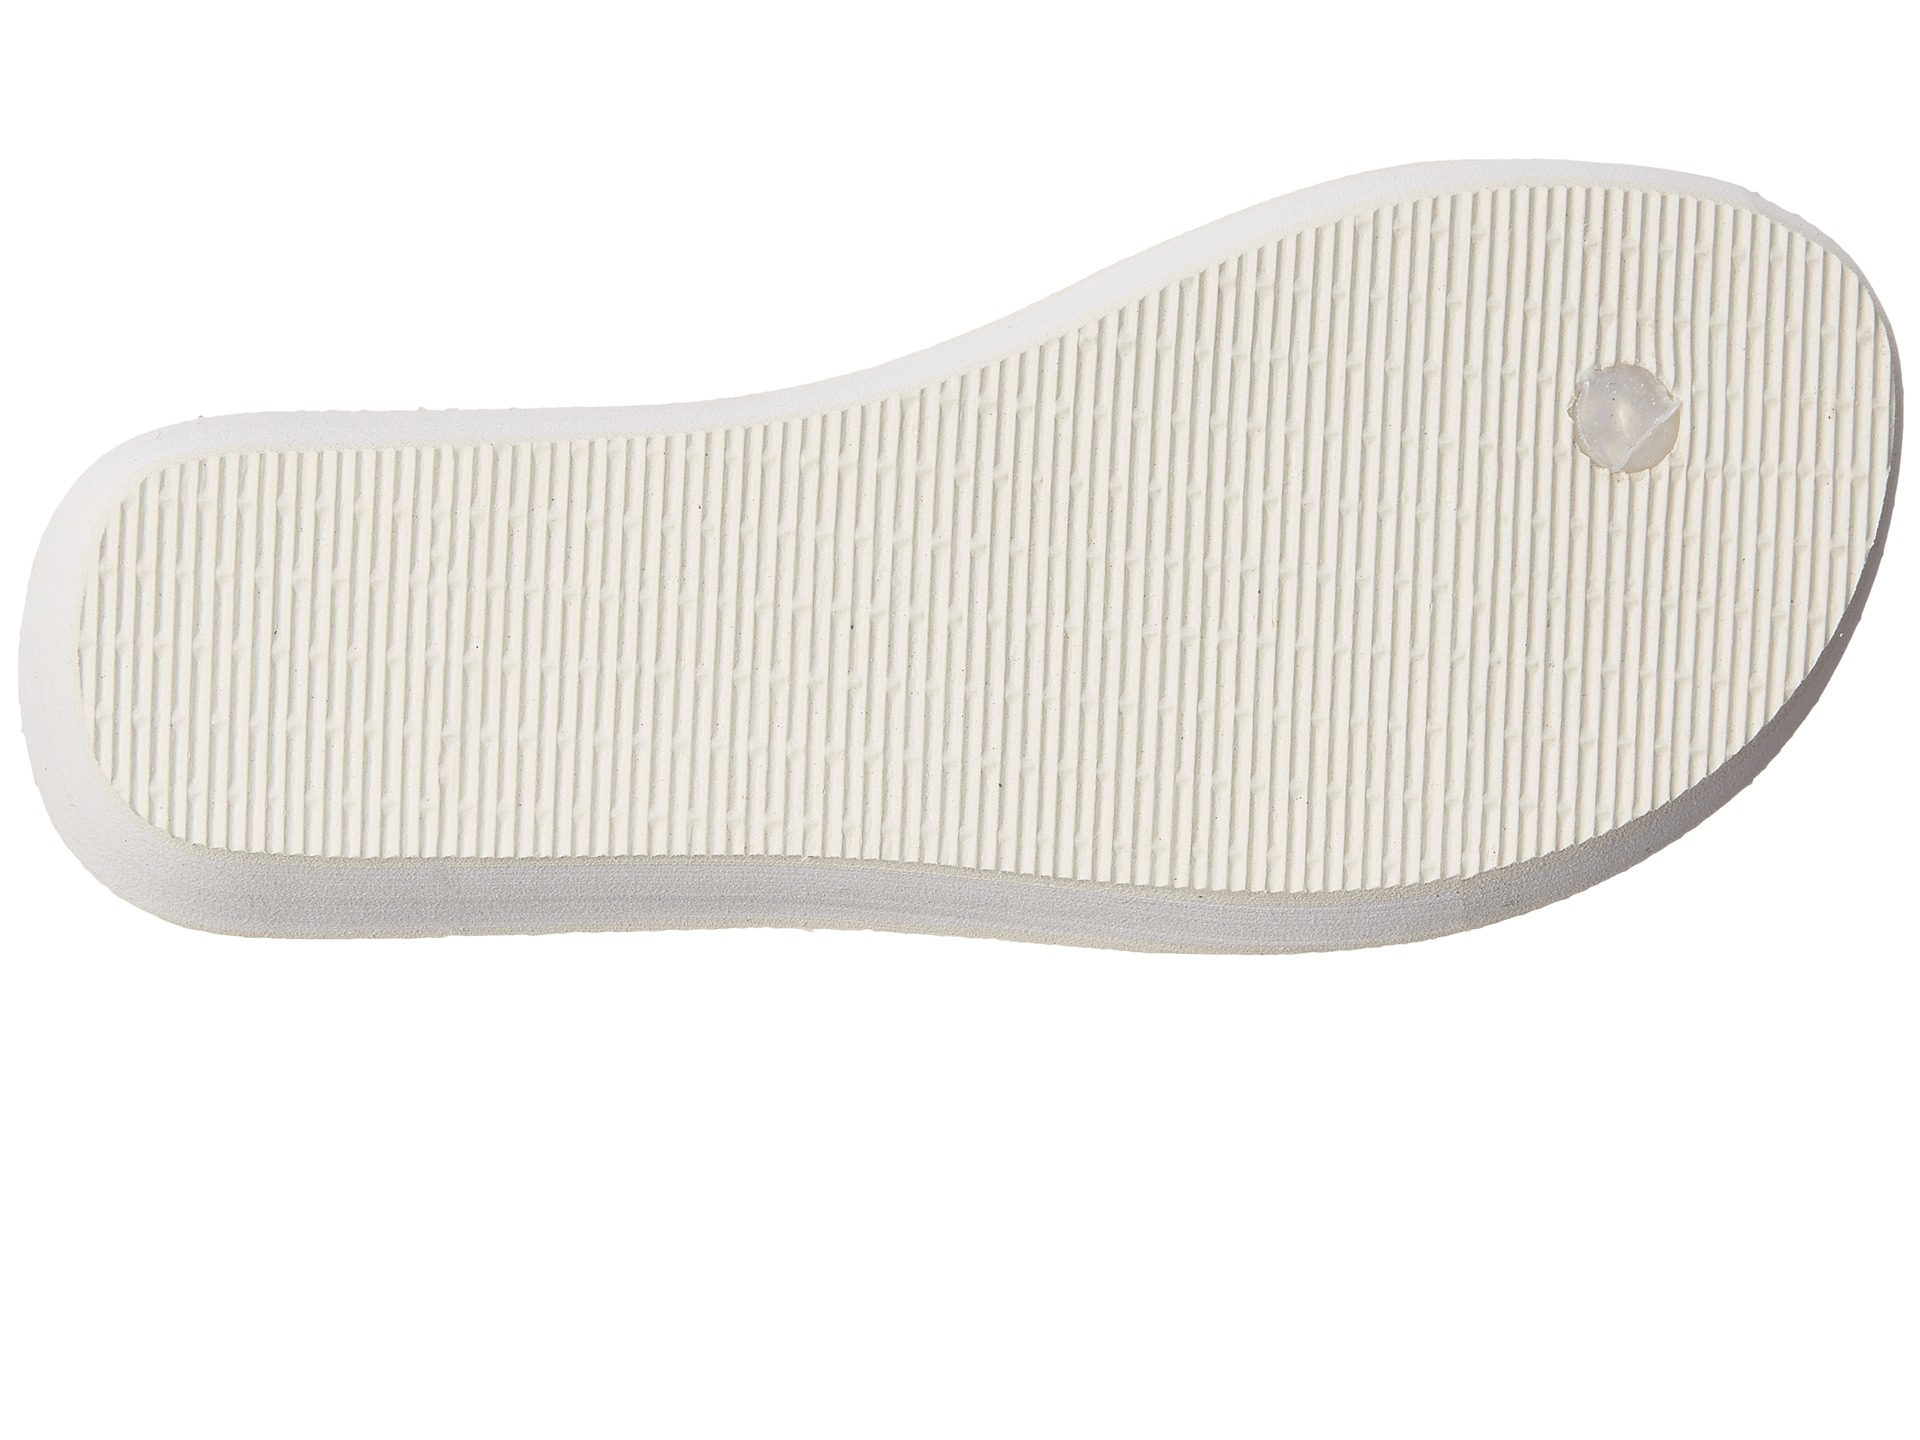 Havaianas Synthetic Highlight Glamour Flip Flops In White -7672